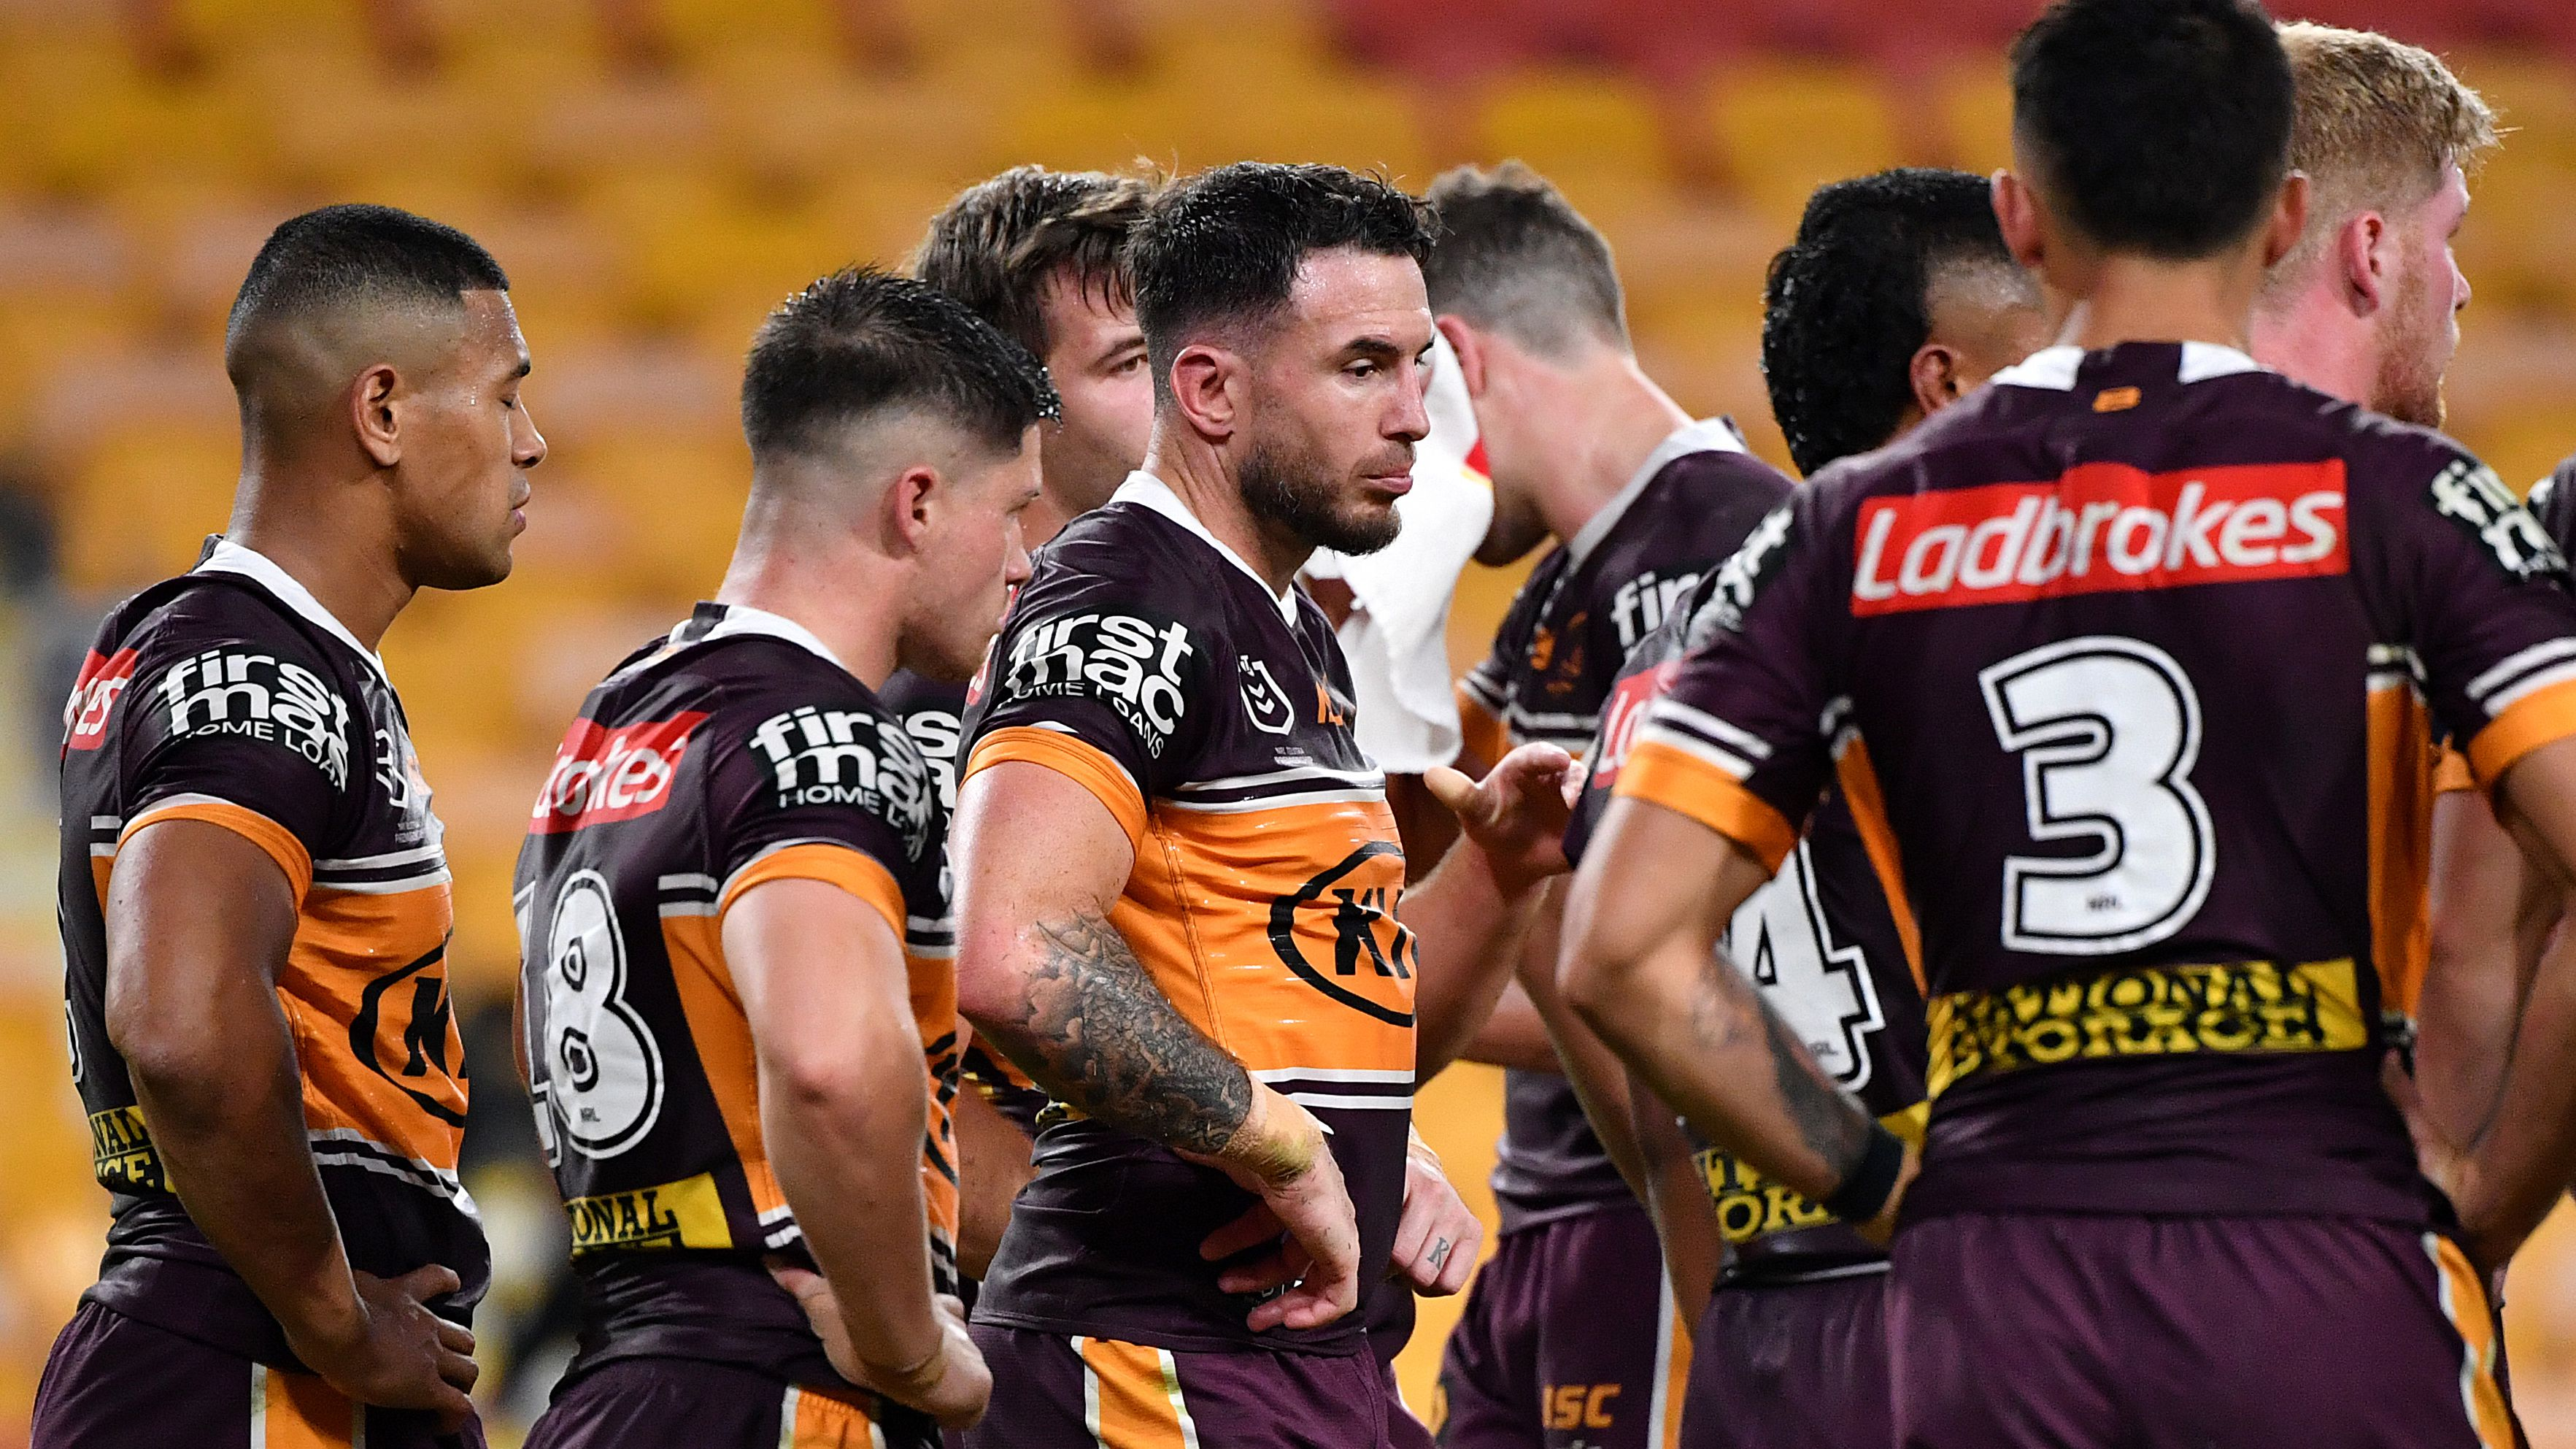 Broncos accused of post-match cowardice after avoiding media to explain thumping loss against Roosters